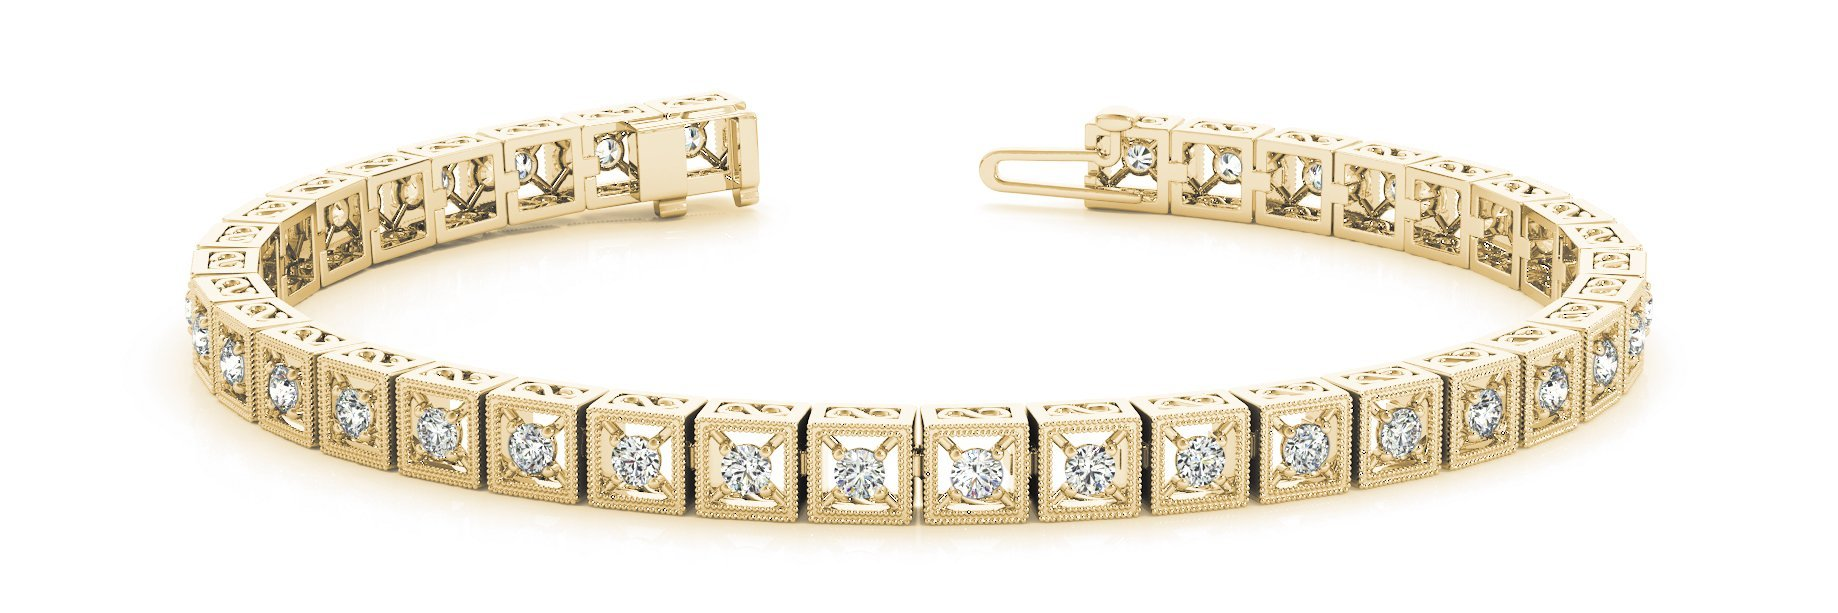 Fancy Diamond Bracelet Ladies 0.86ct tw - 14kt Yellow Gold